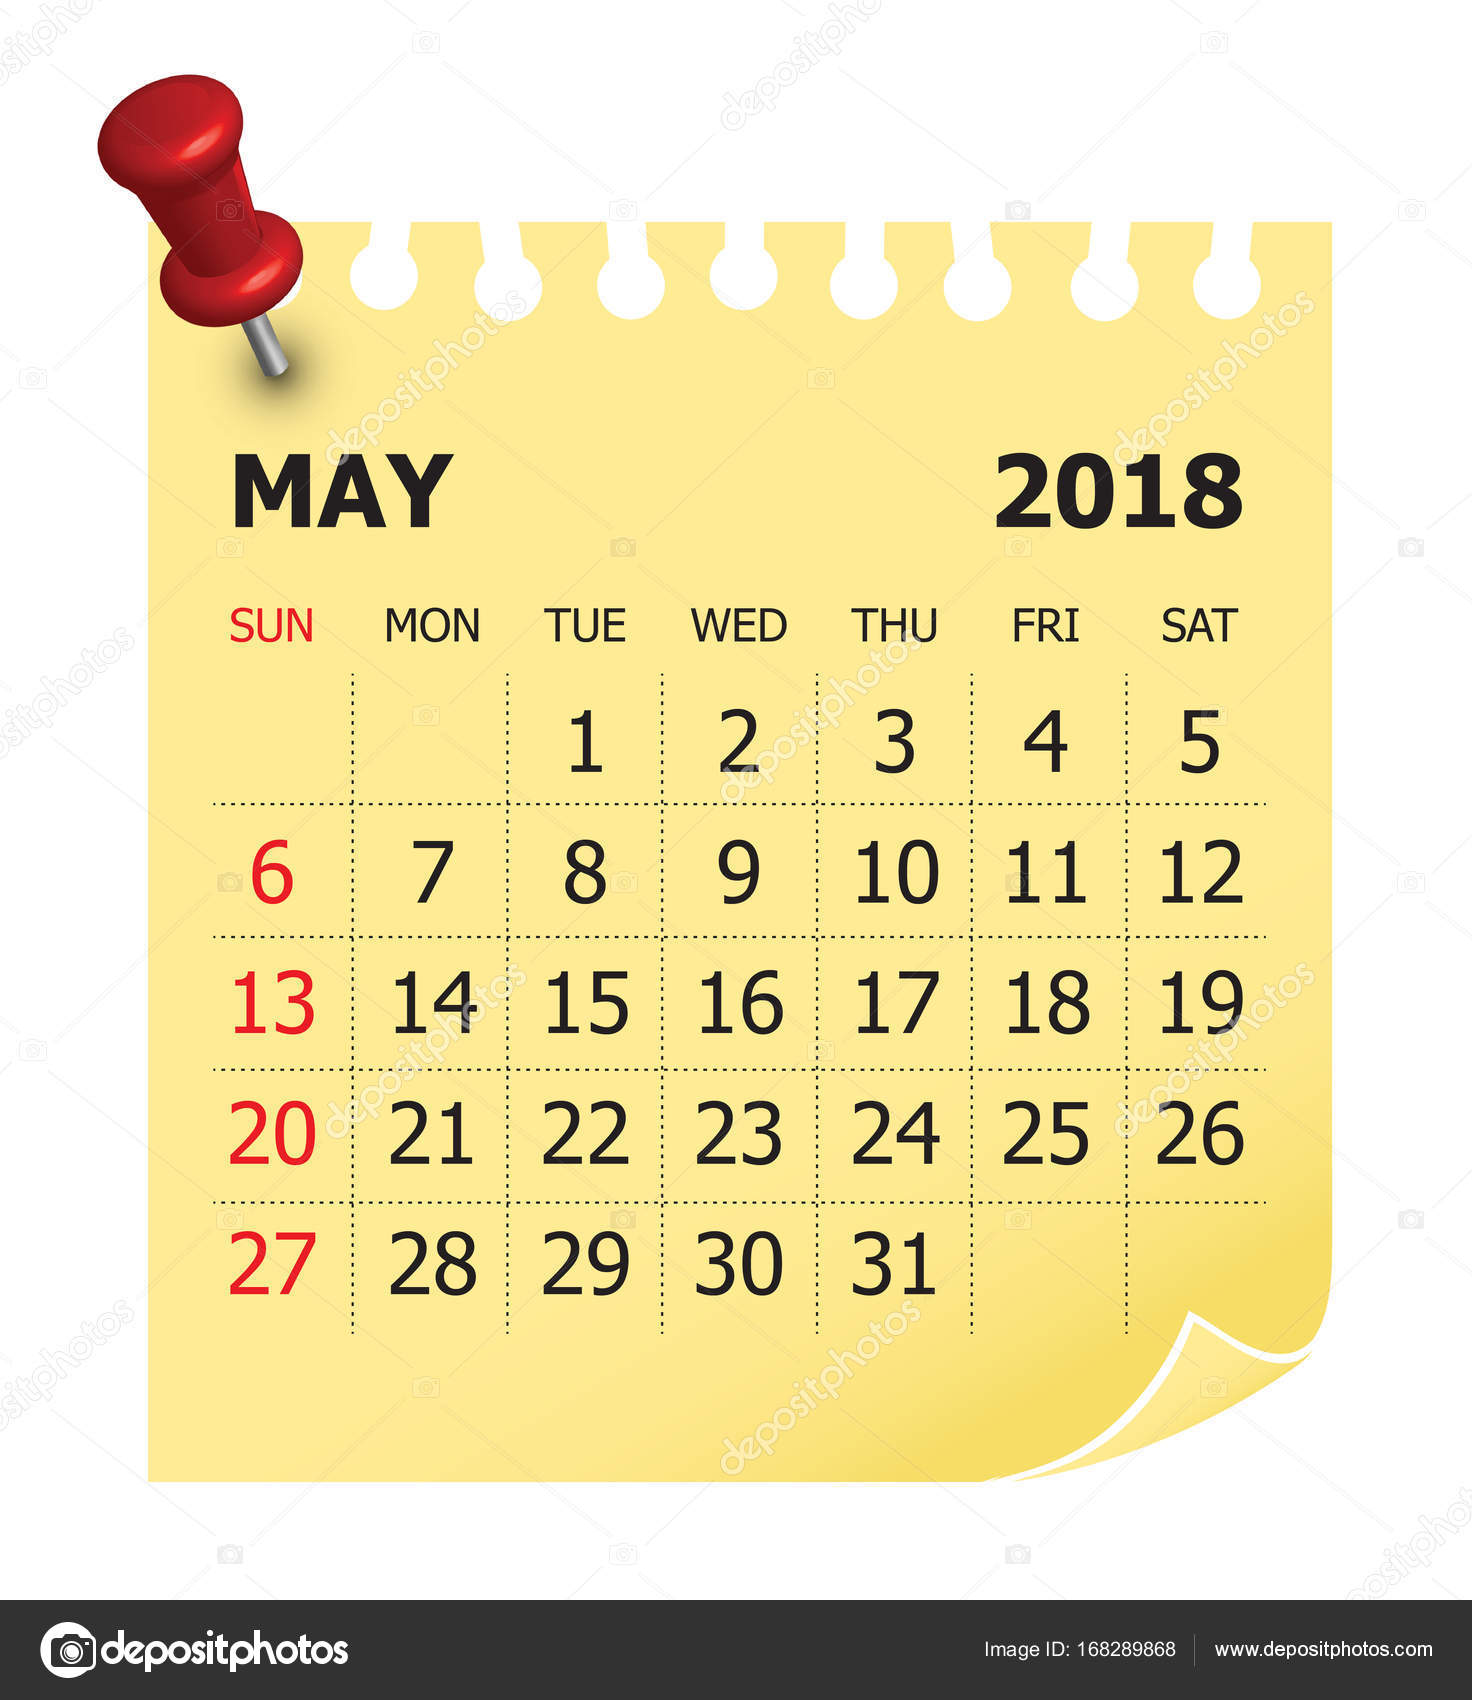 may 2018 calendar vector illustration stock vector